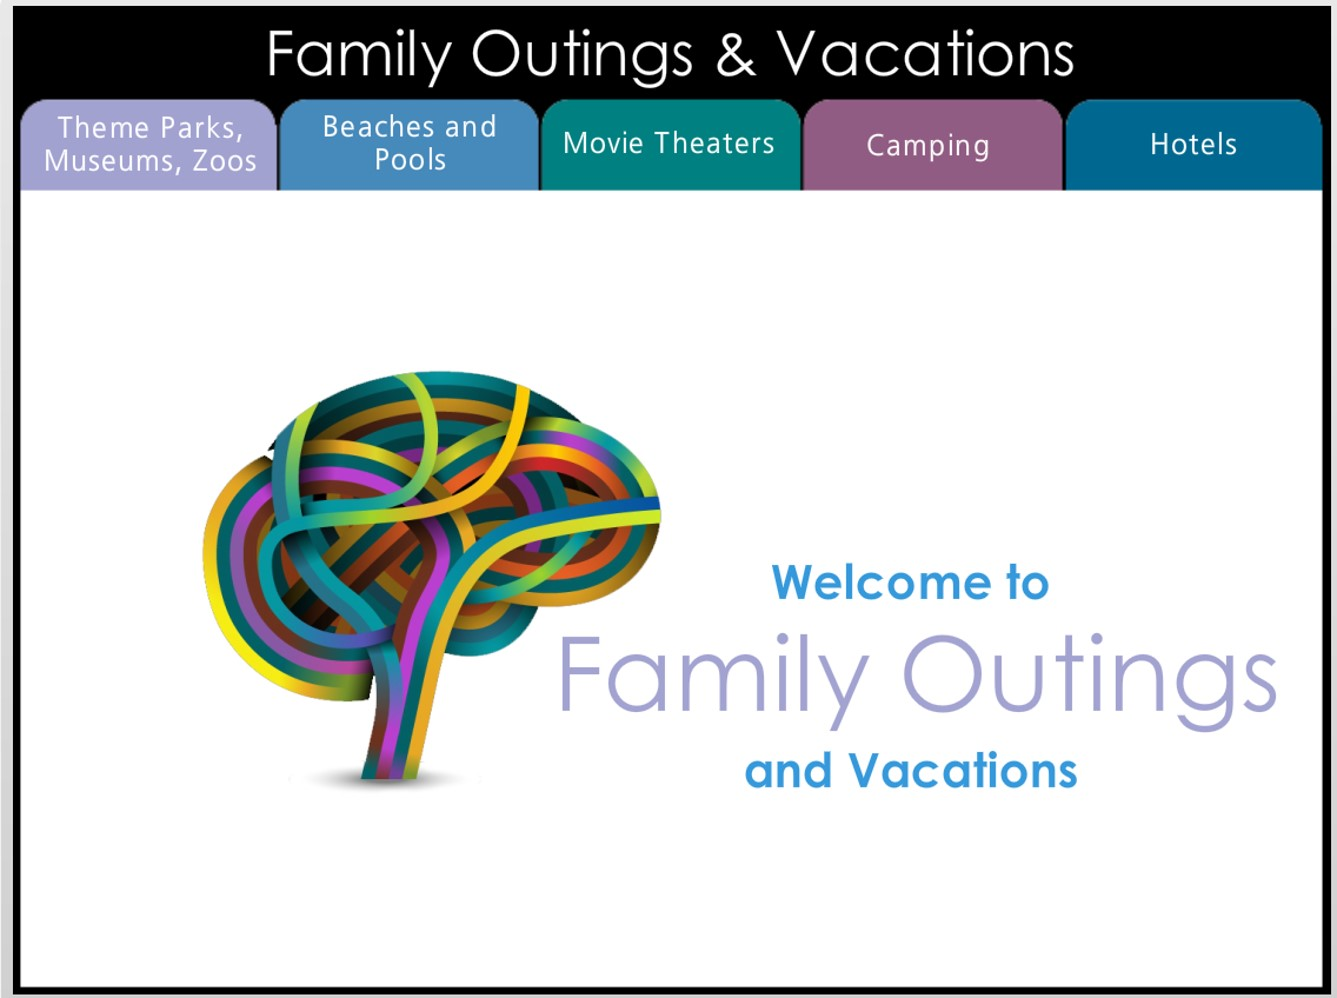 Family Outings and Vacations